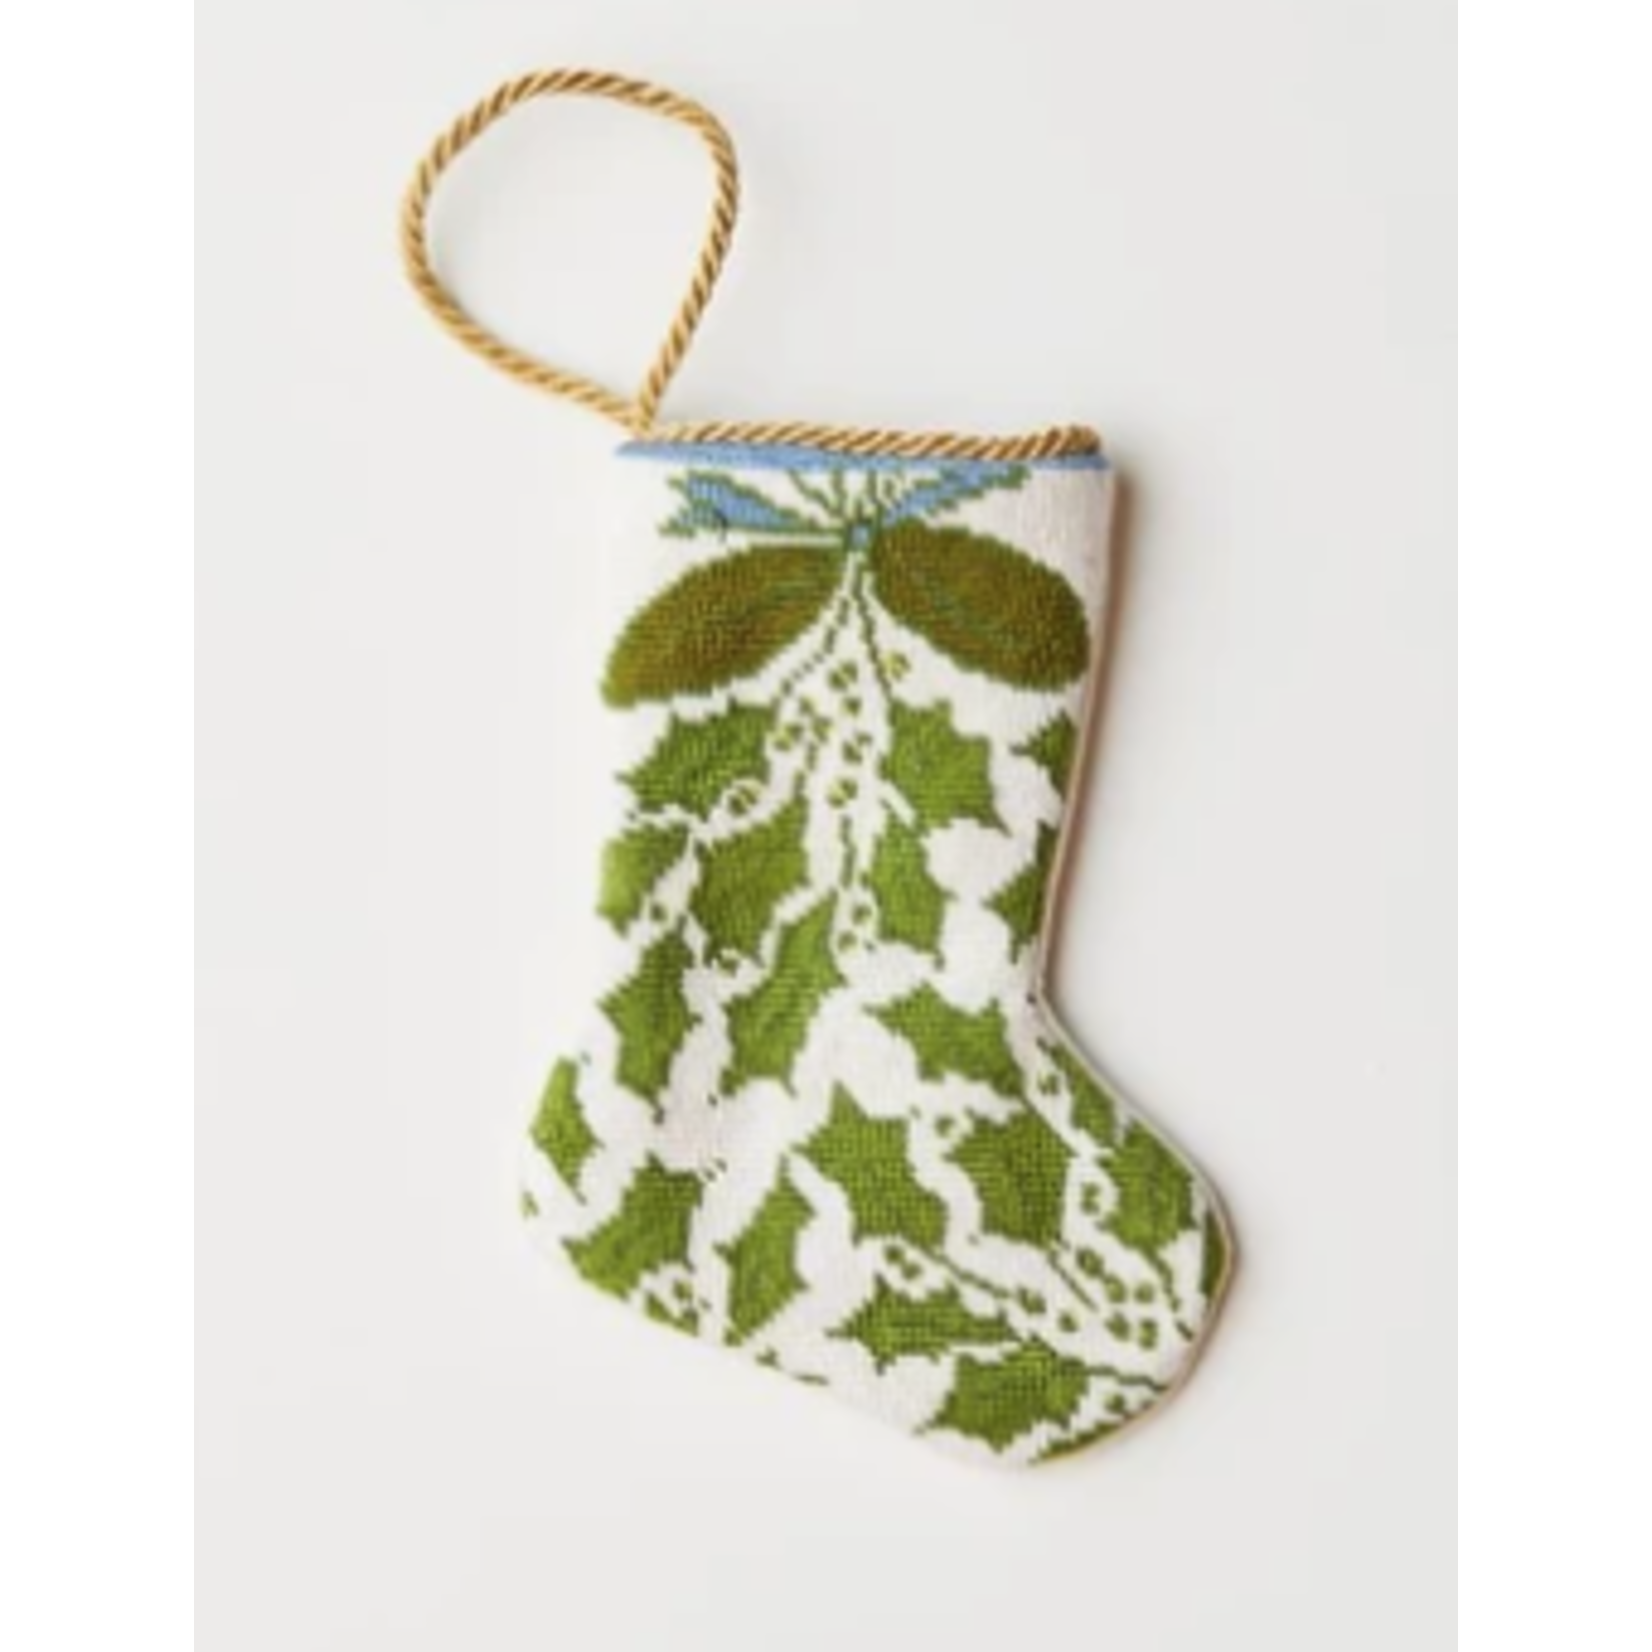 Bauble Stocking Deck the Halls retired